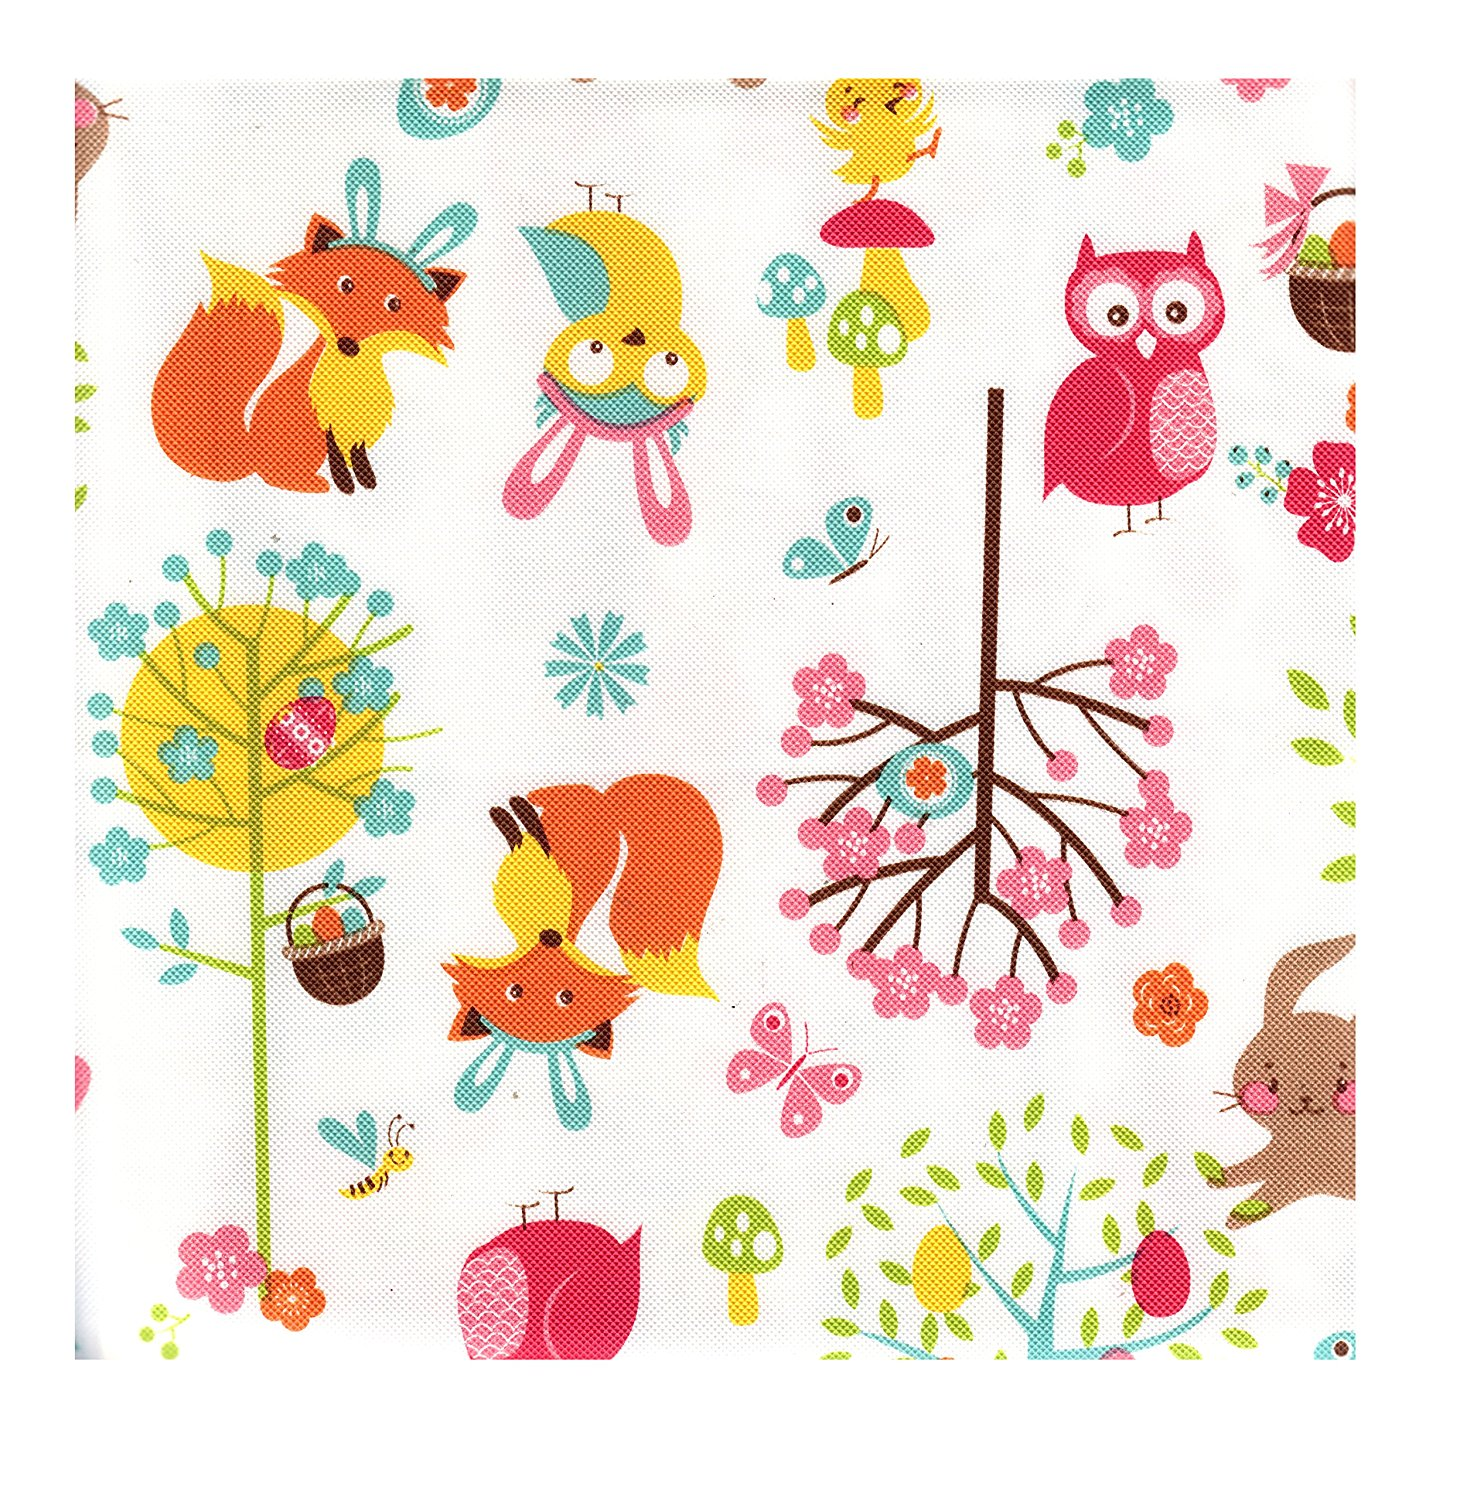 Incroyable Easter Woodland Friends Peva Vinyl Tablecloth 60 X 84 Oblong / Oval